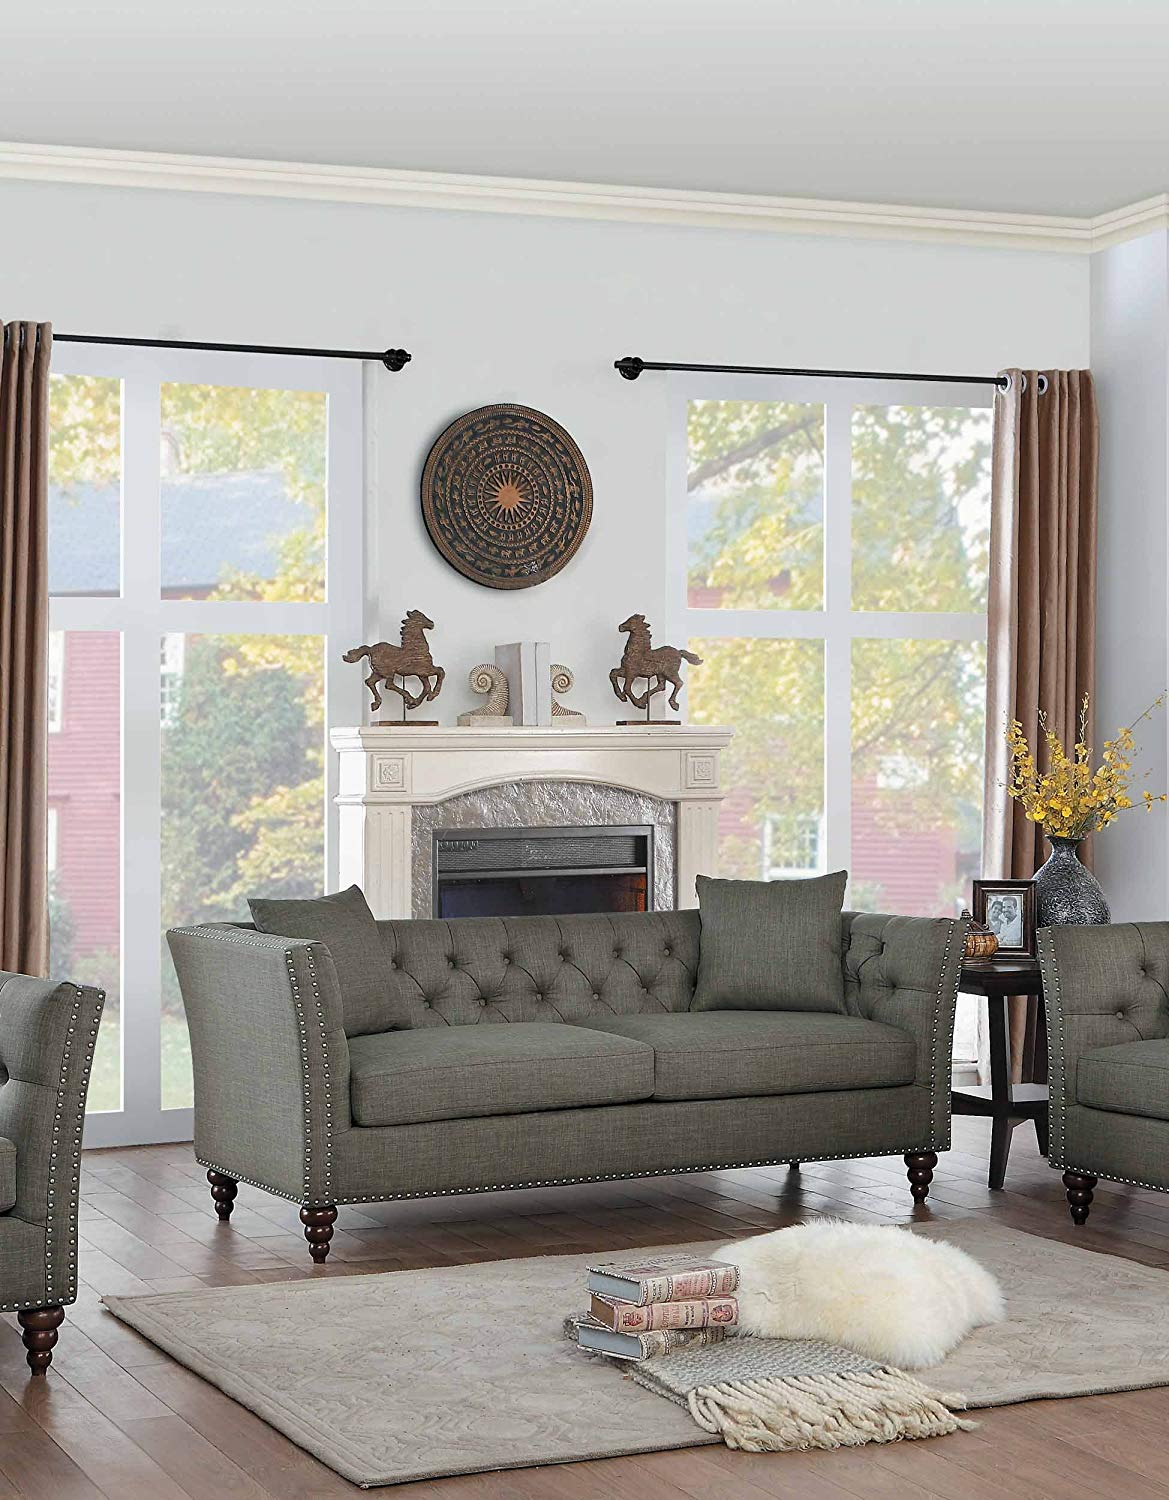 gray-tufted-sofa-tuxedo-style-with-flared-arms